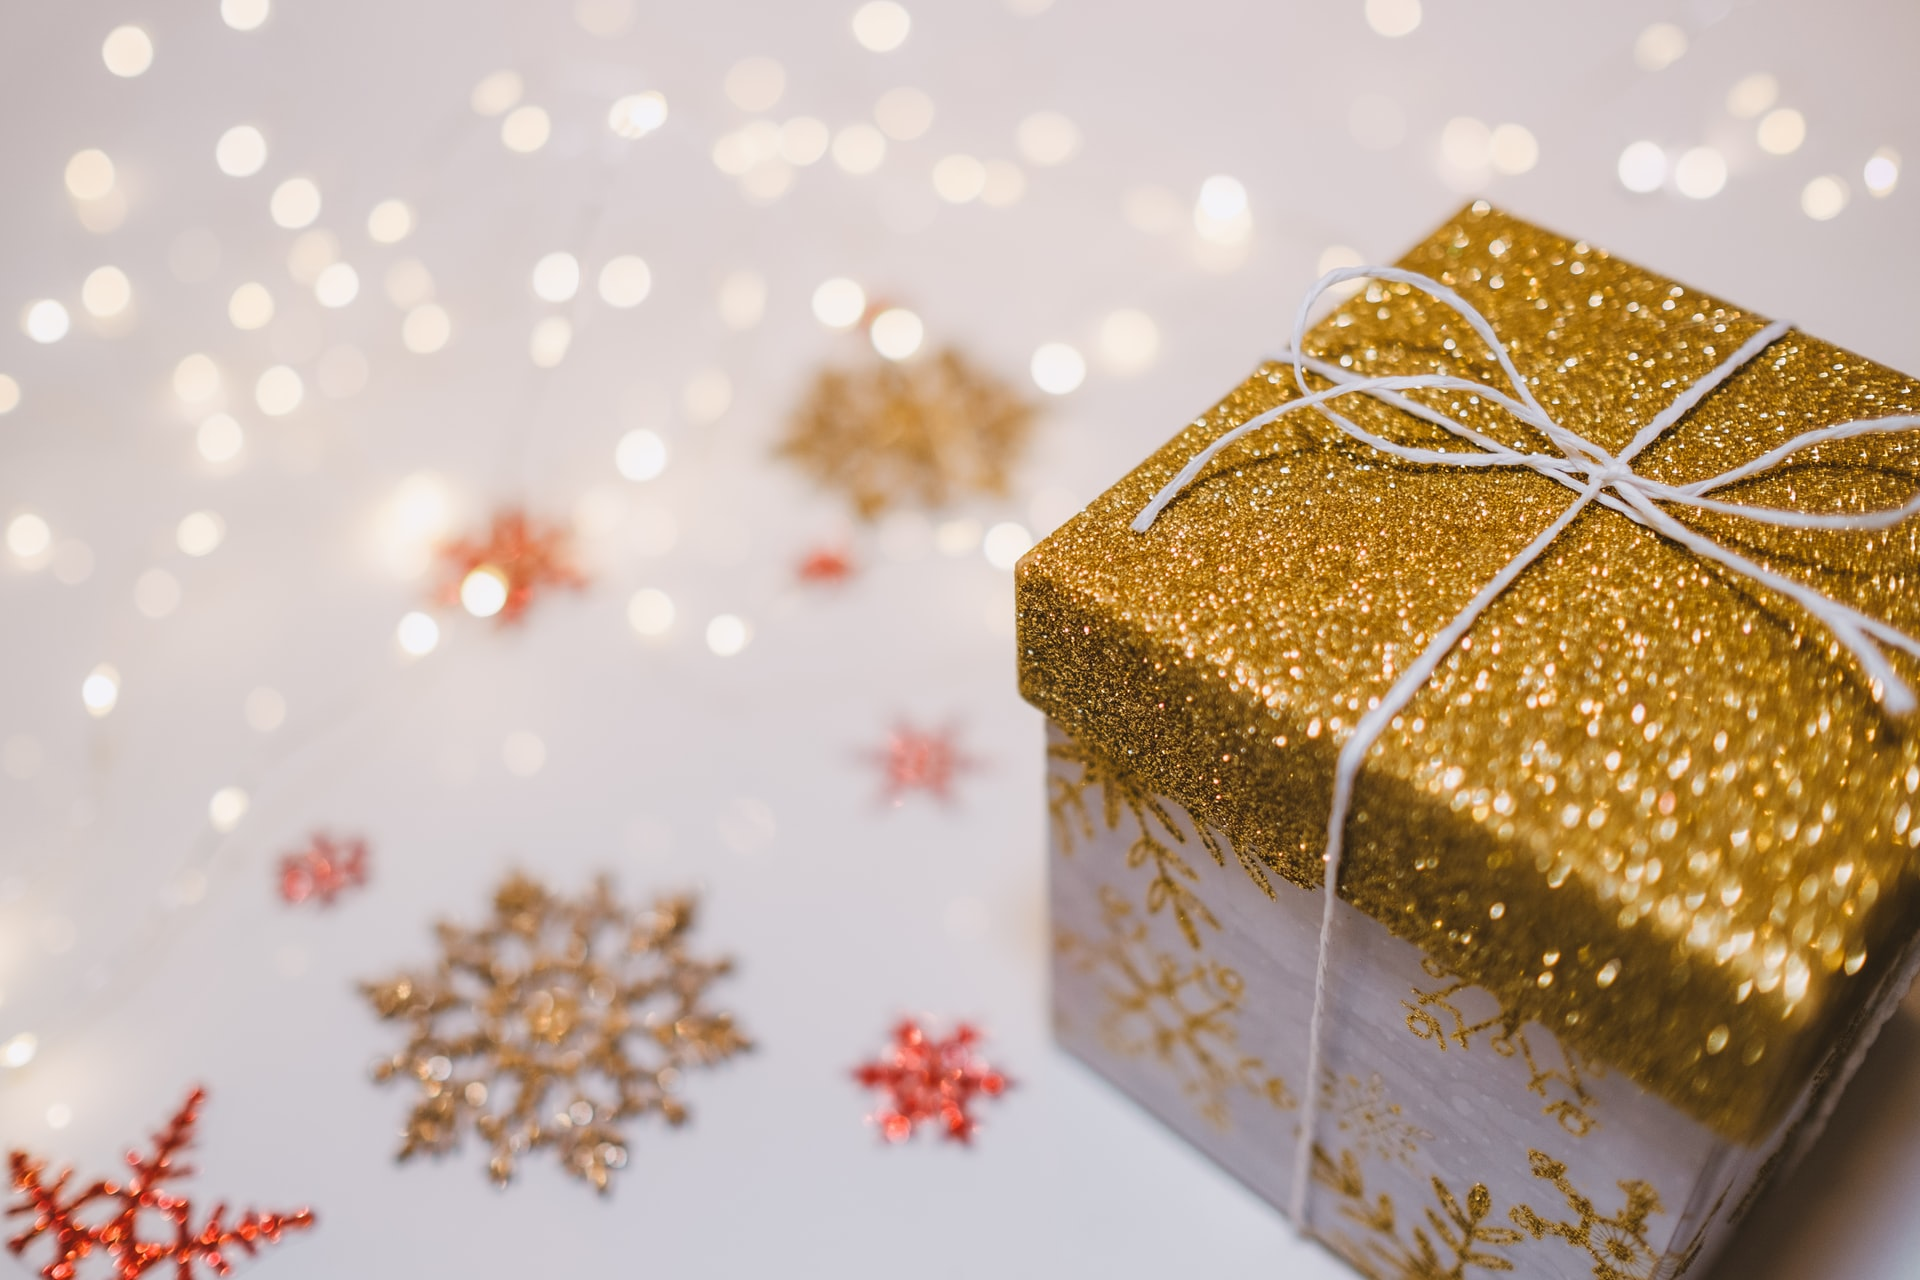 Shop for Gifts Near Your DC Apartment at the Downtown Holiday Market